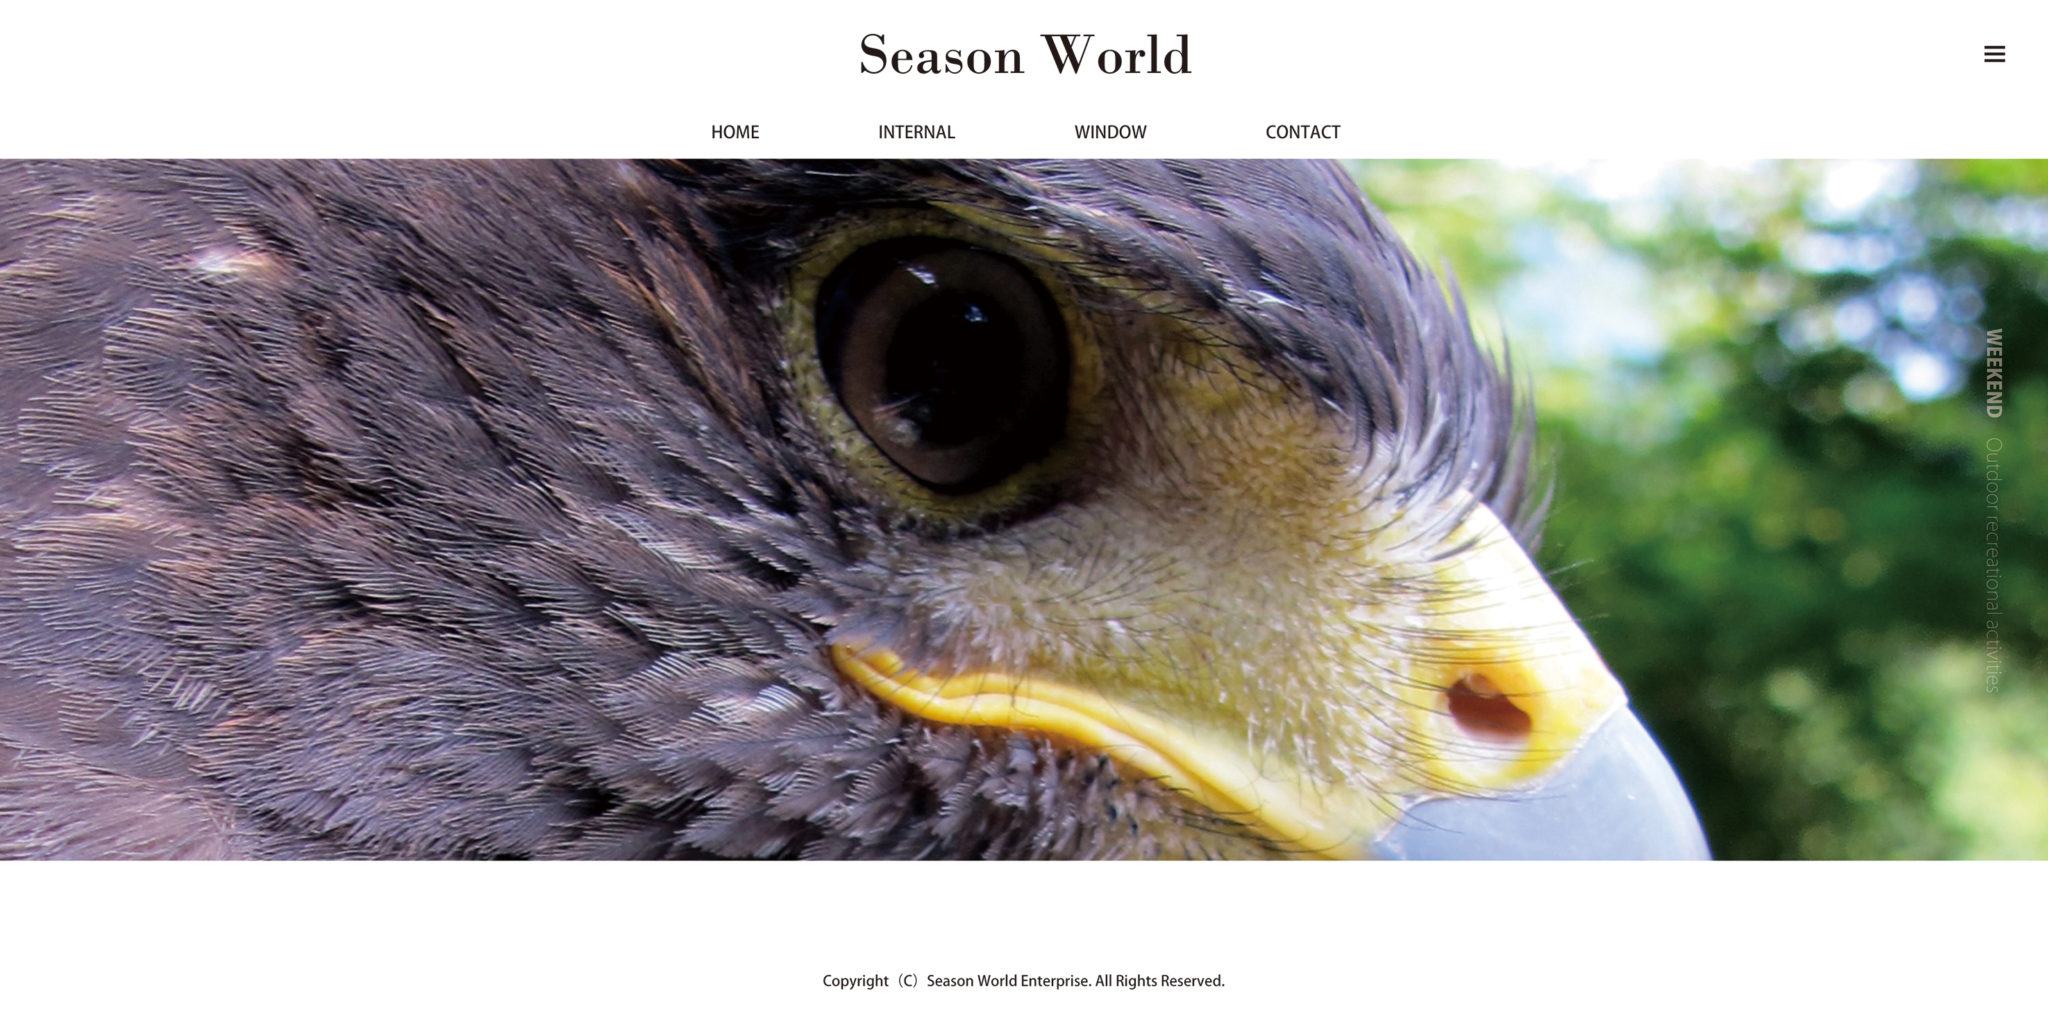 001_SEASON WORLD ENTERPRISE